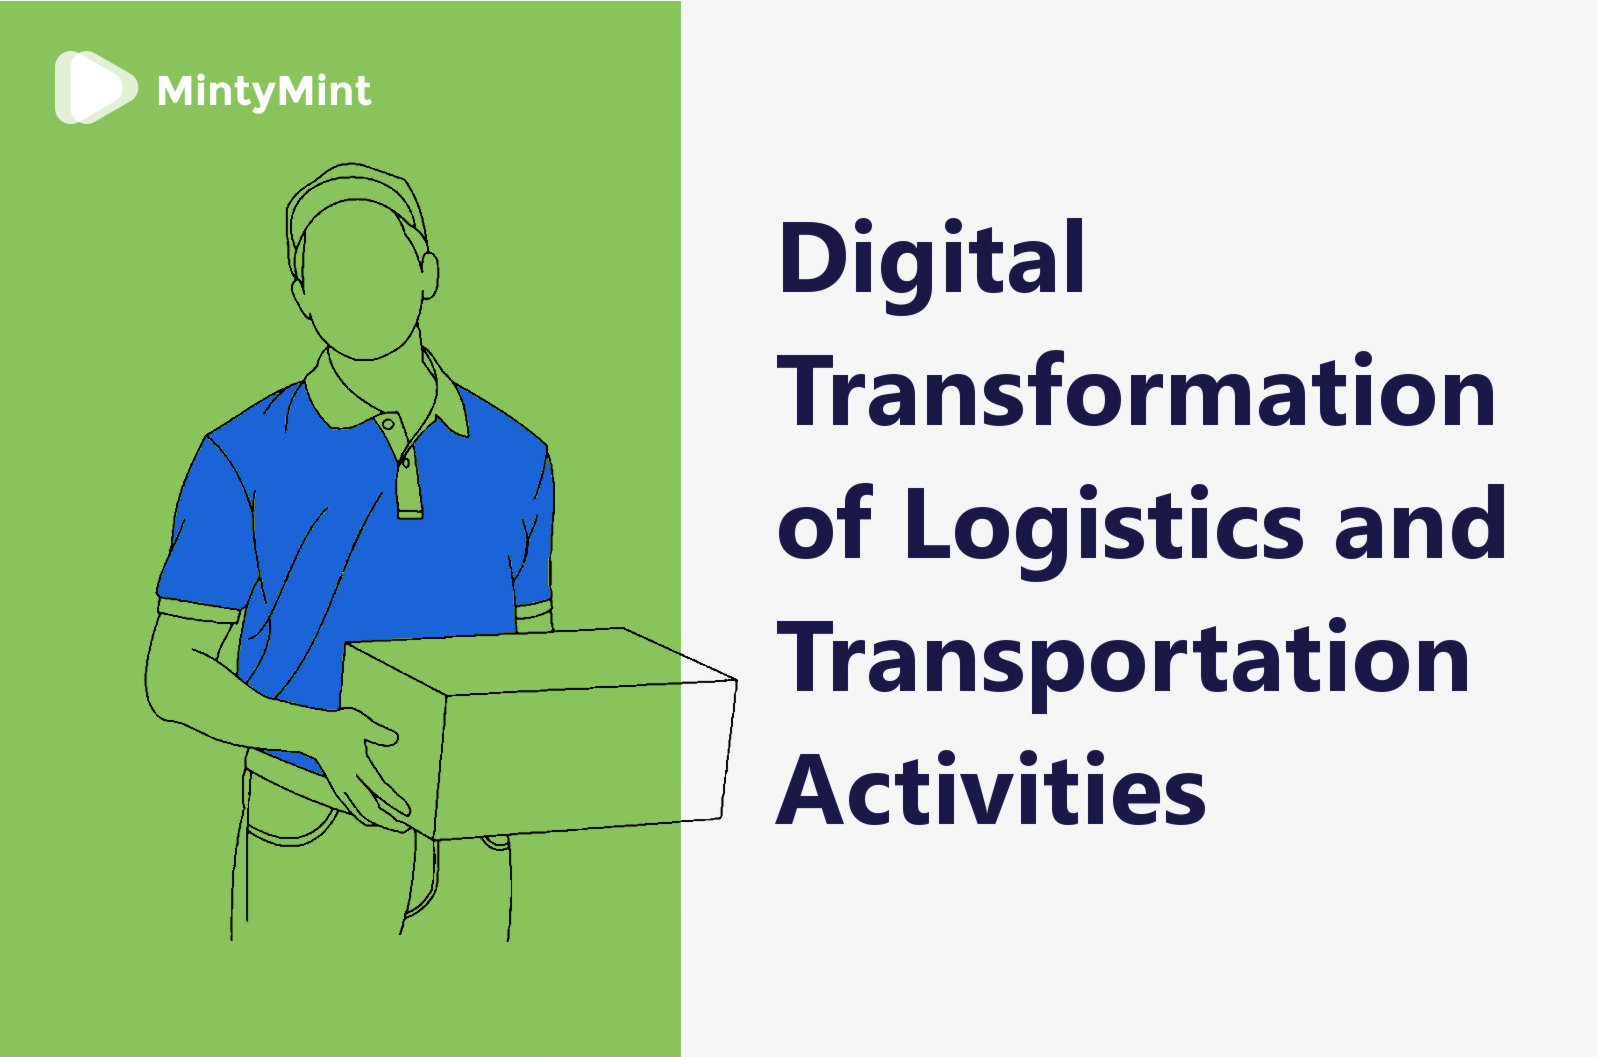 Digital transformation in Logistics cover